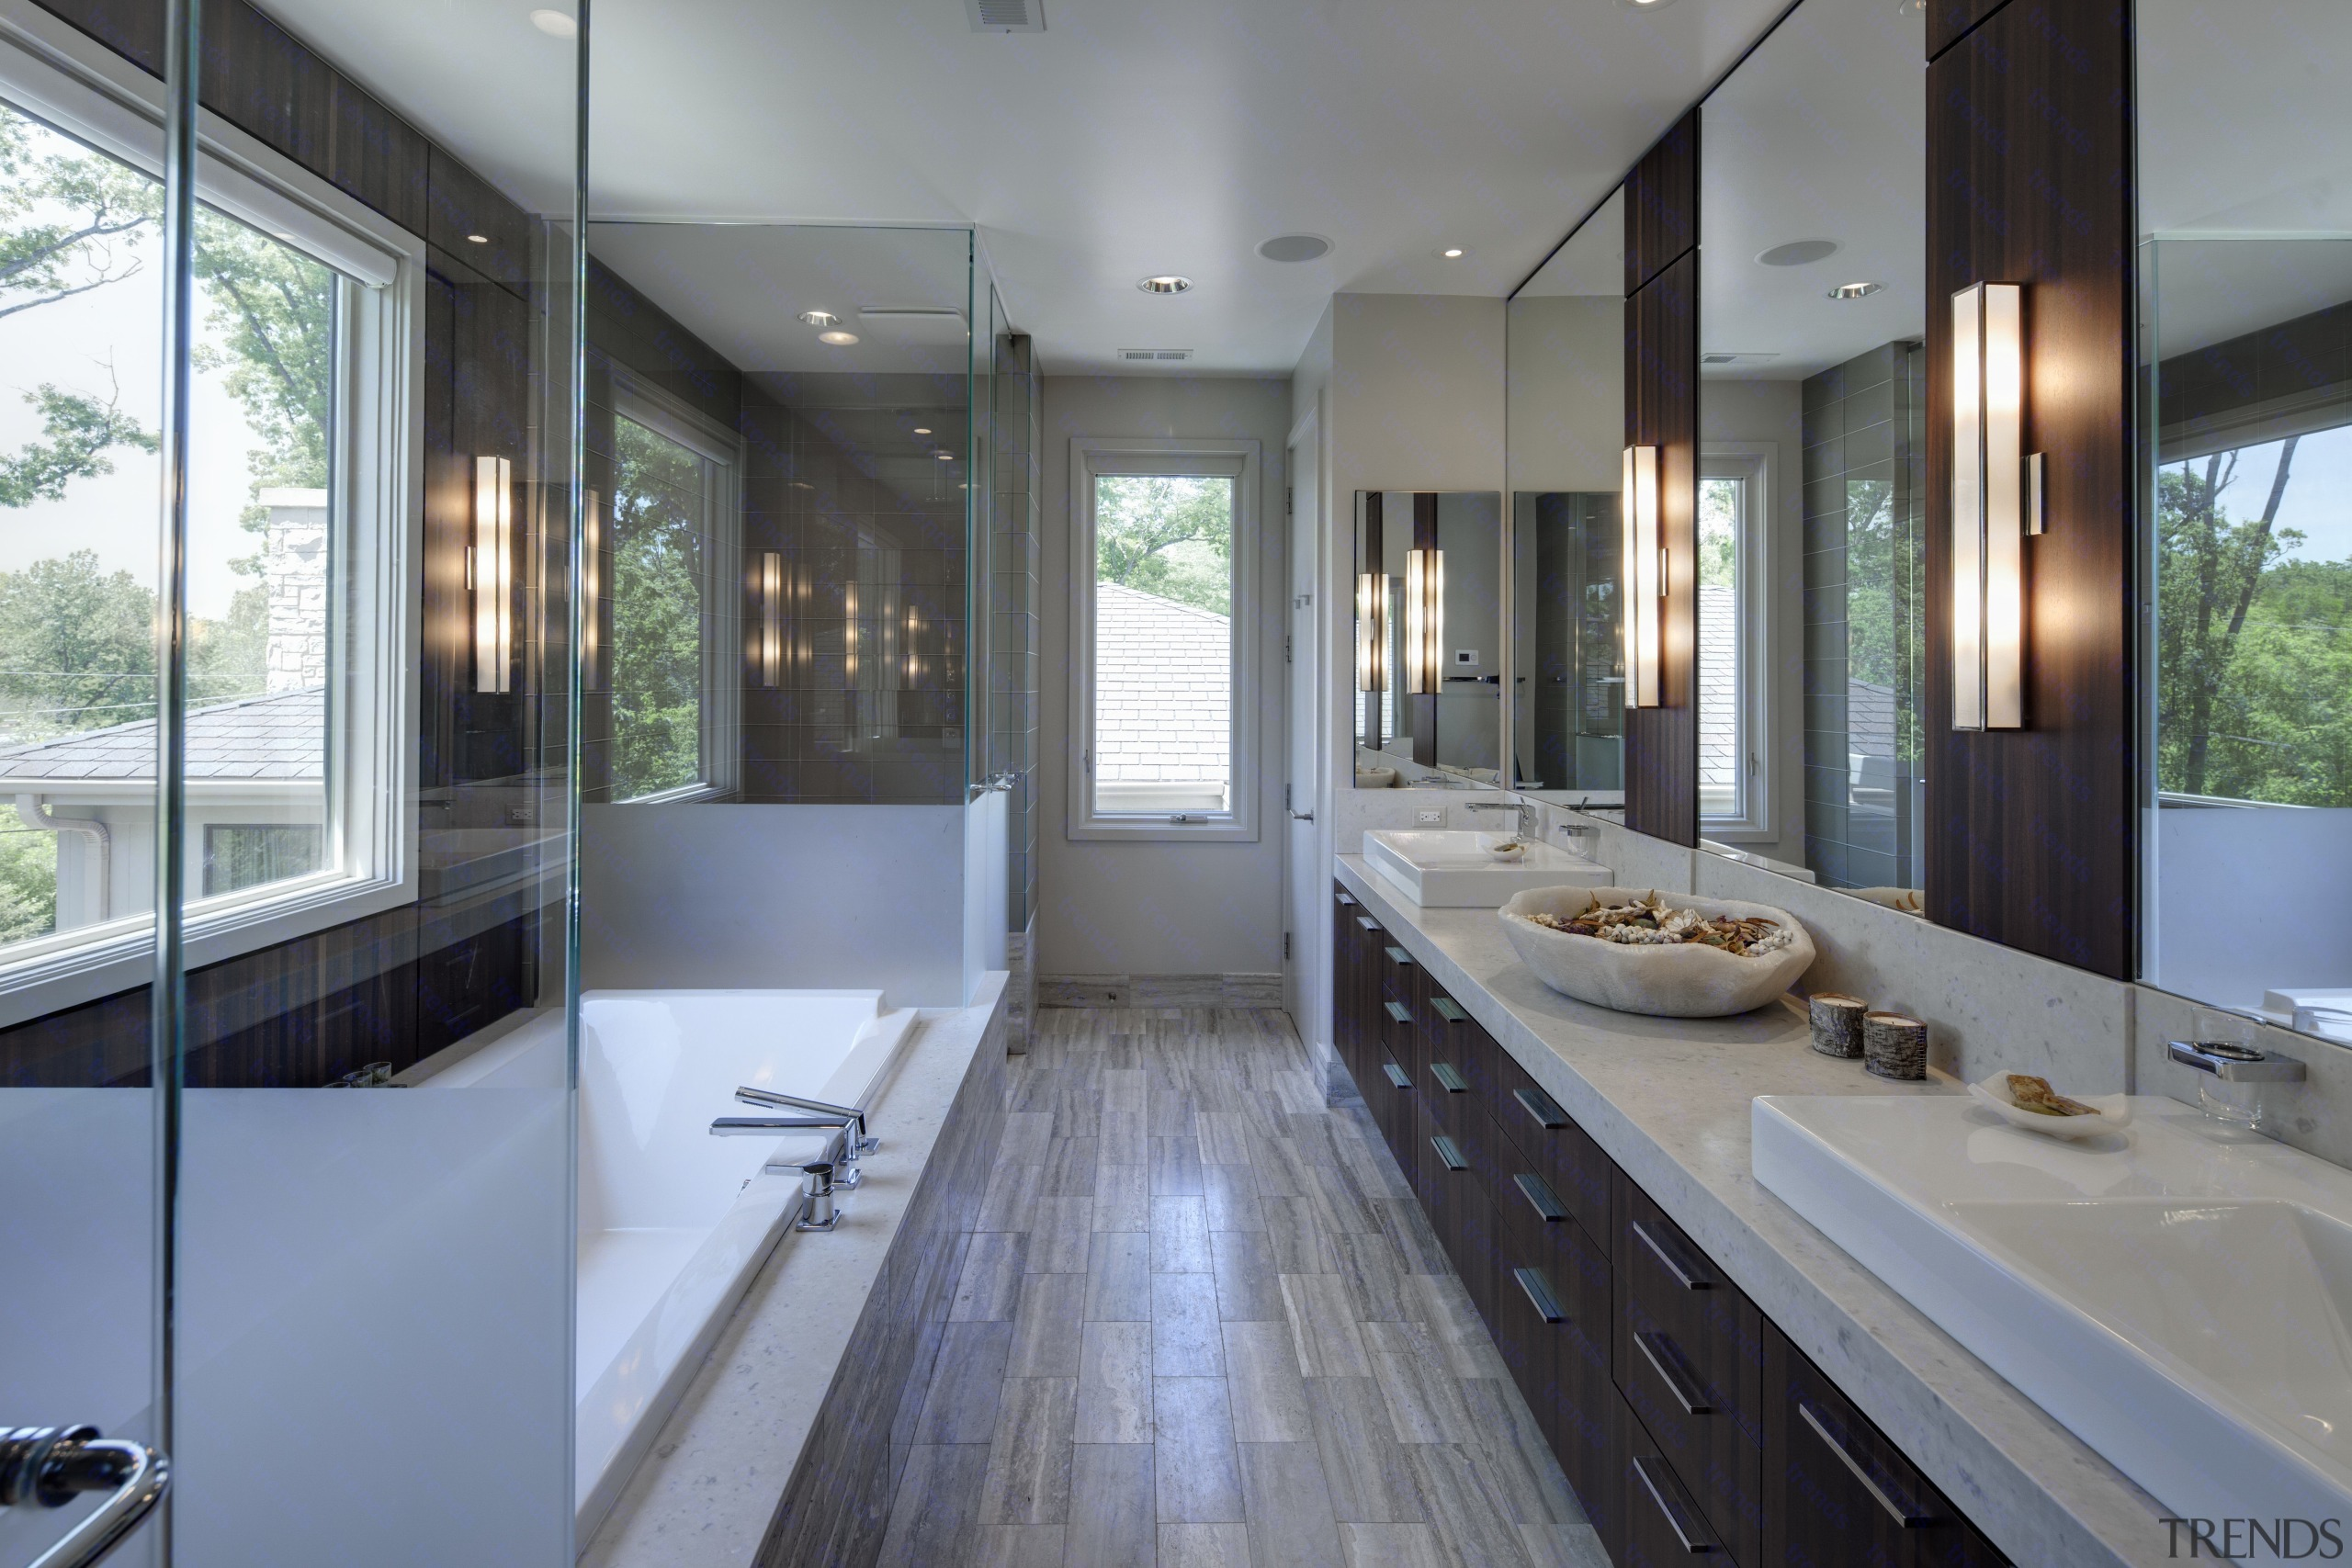 Greys and whites offset wooden floors and ceilings. bathroom, countertop, interior design, kitchen, room, window, gray